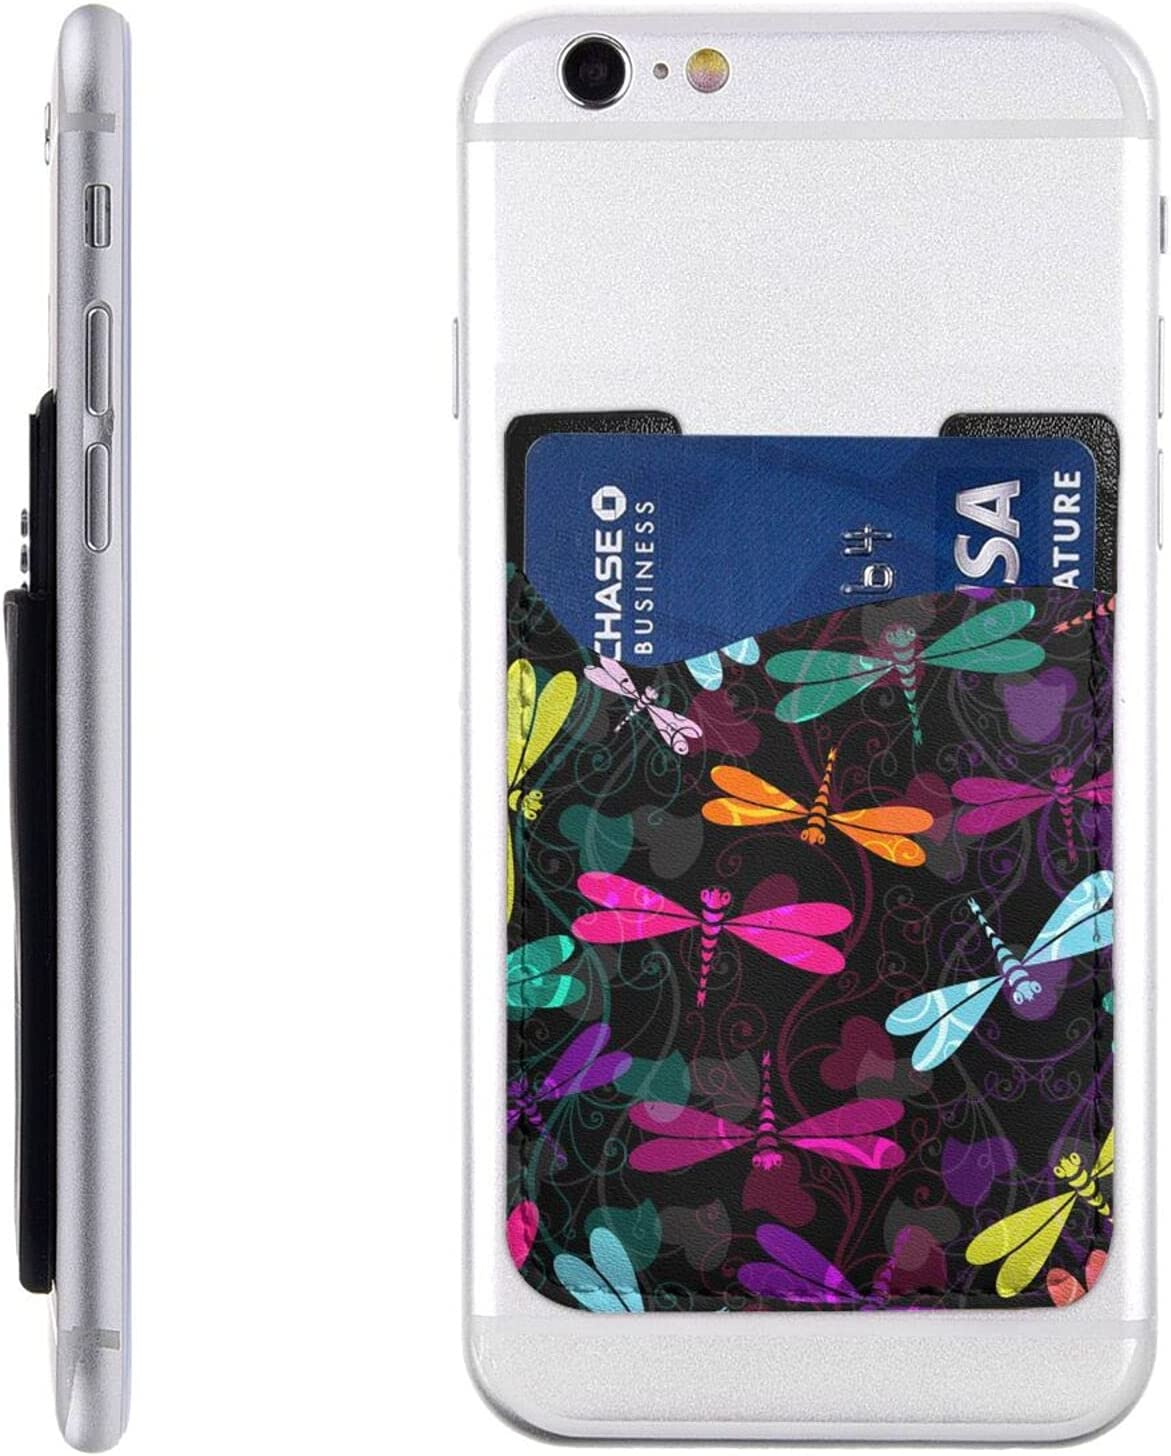 Colorful Dragonfly Phone Card Holder,Pu Leather Credit Card Wallet Phone Case Pouch Sleeve Pocket for All Smartphones